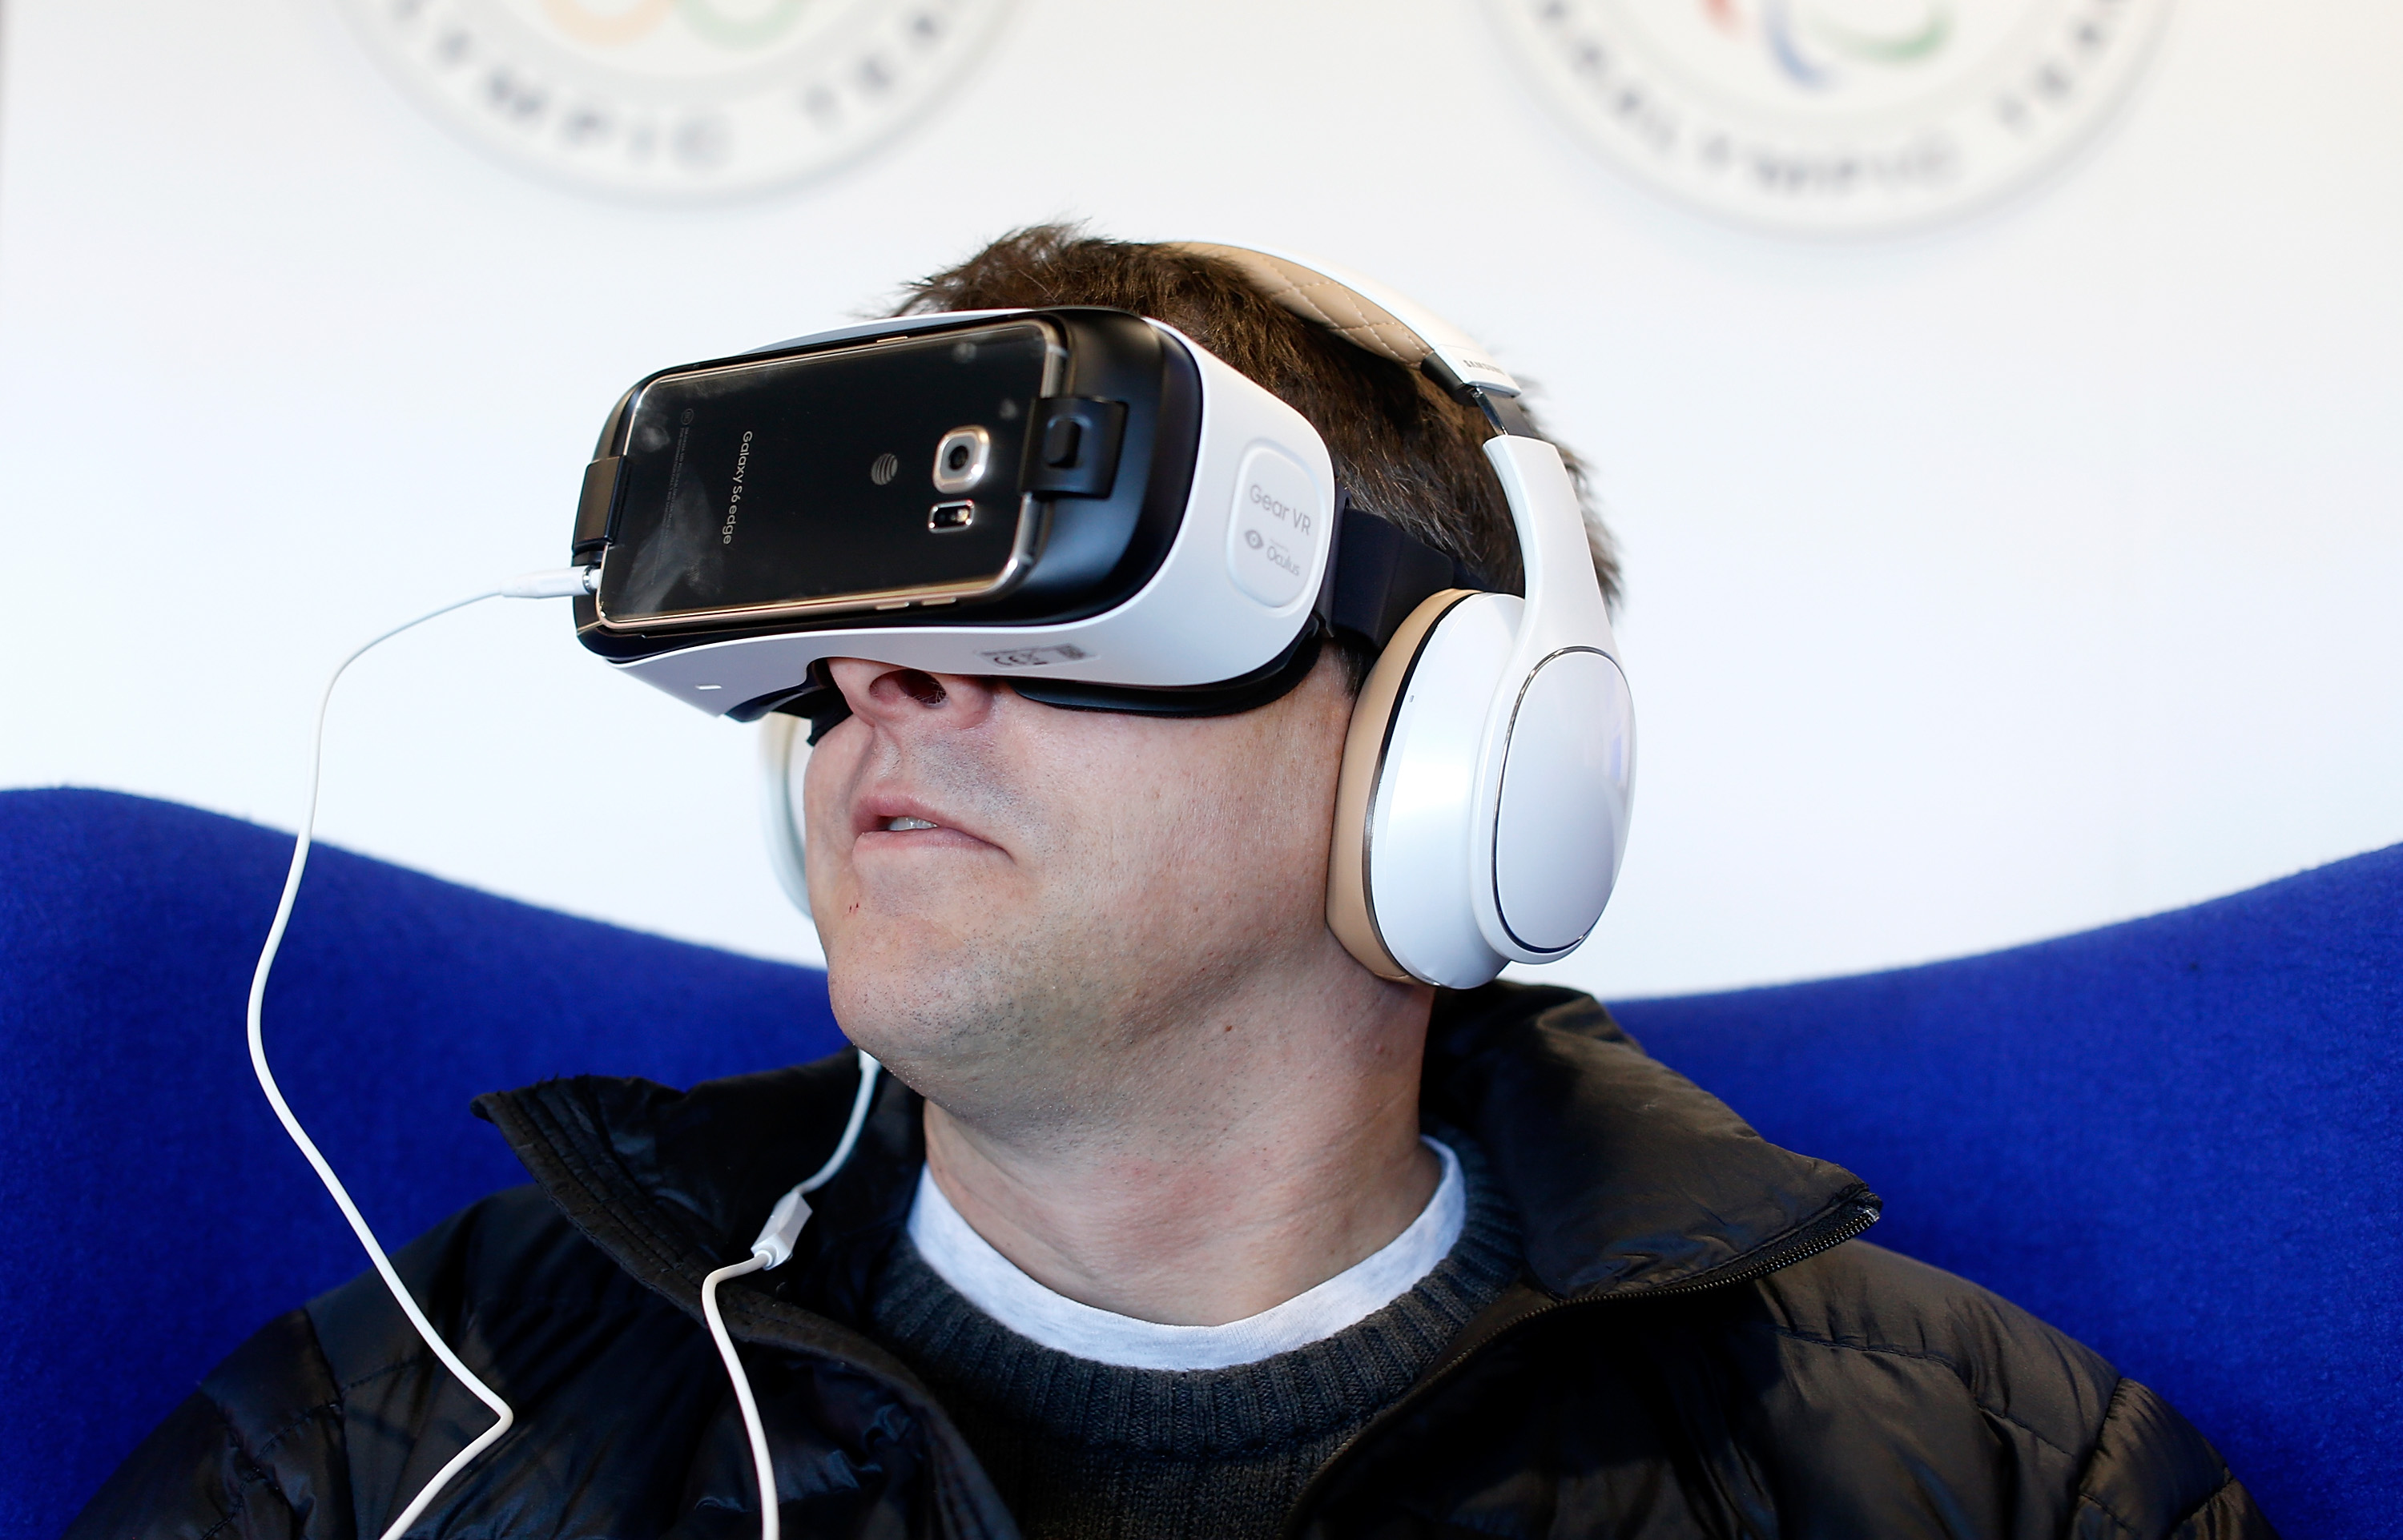 Fans attend Team USA's Virtual Reality Experience Powered by Samsung Gear VR during the 2015 Road to Rio Tour at the Head of the Charles Regatta on October 17, 2015 in Boston, Massachusetts.